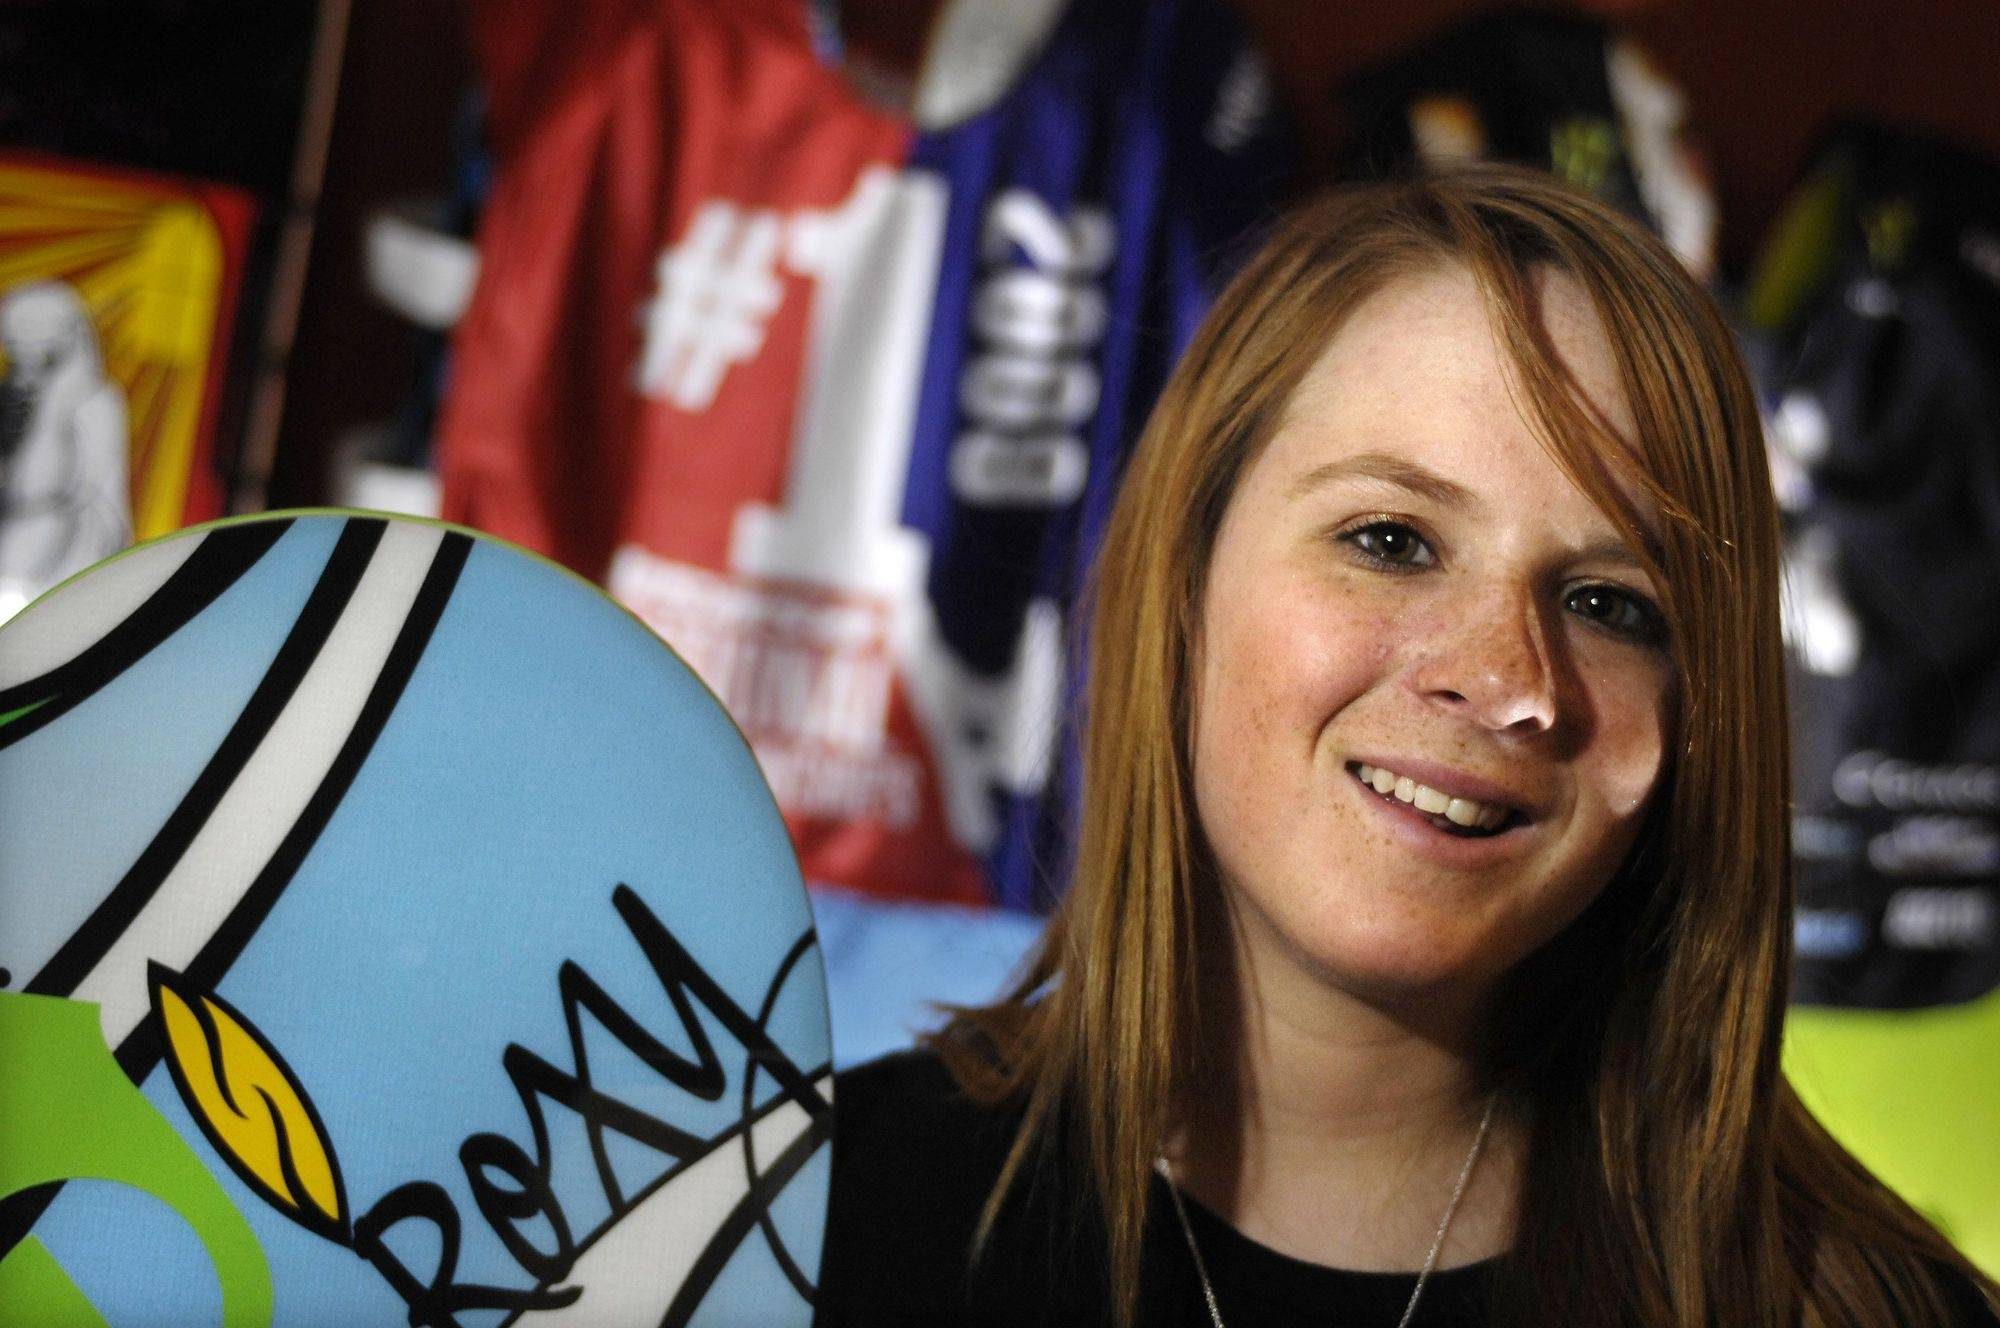 Kirby Kelly, 14, of Algonquin won two events inn a national snowboarding competition.